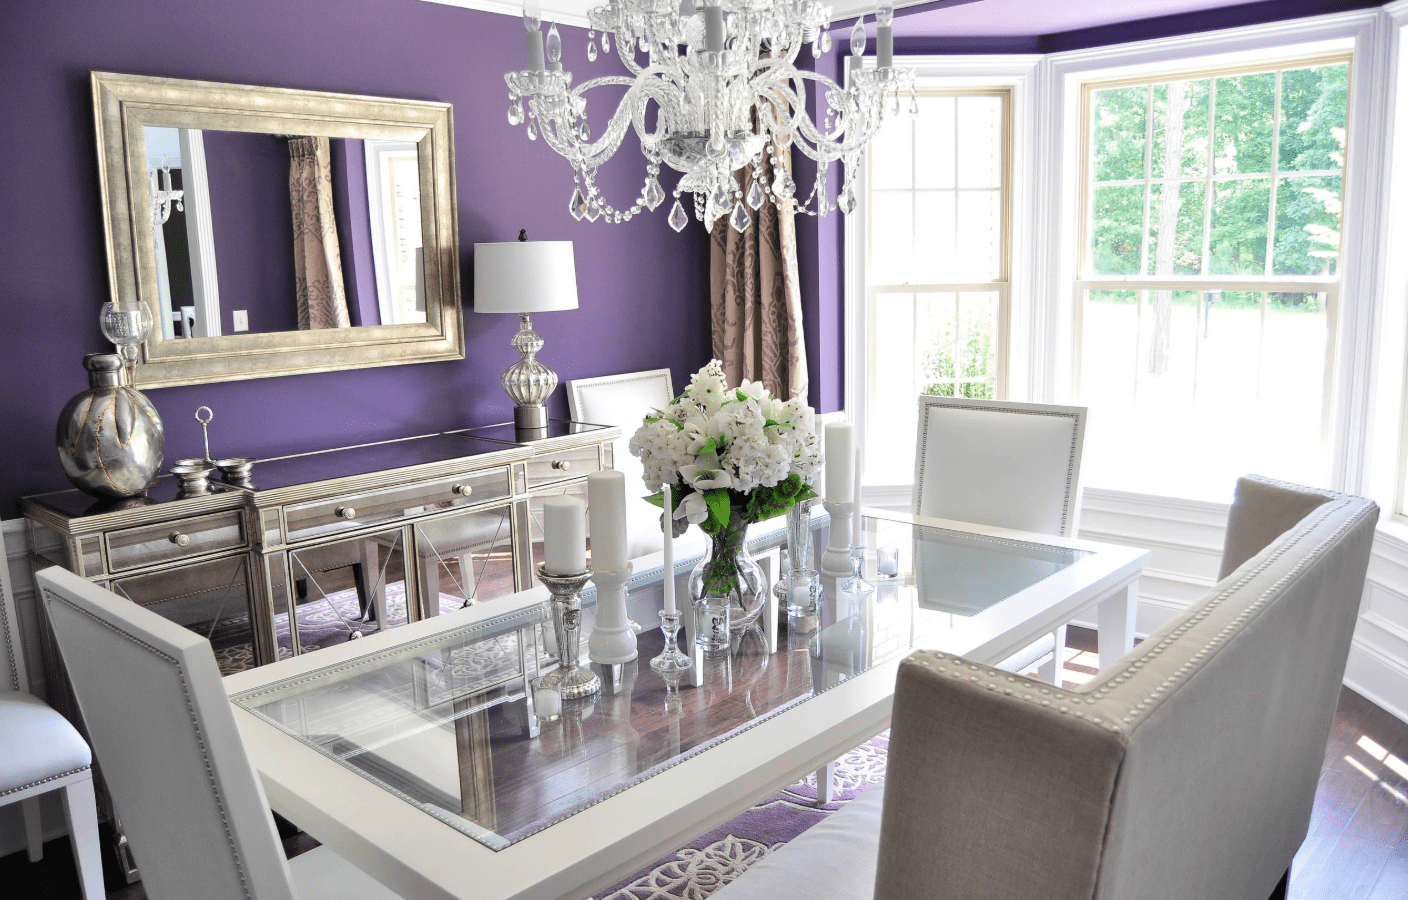 Beau A Touch Of Victorian Style, This Dining Room Has Purple Walls, Paired With A